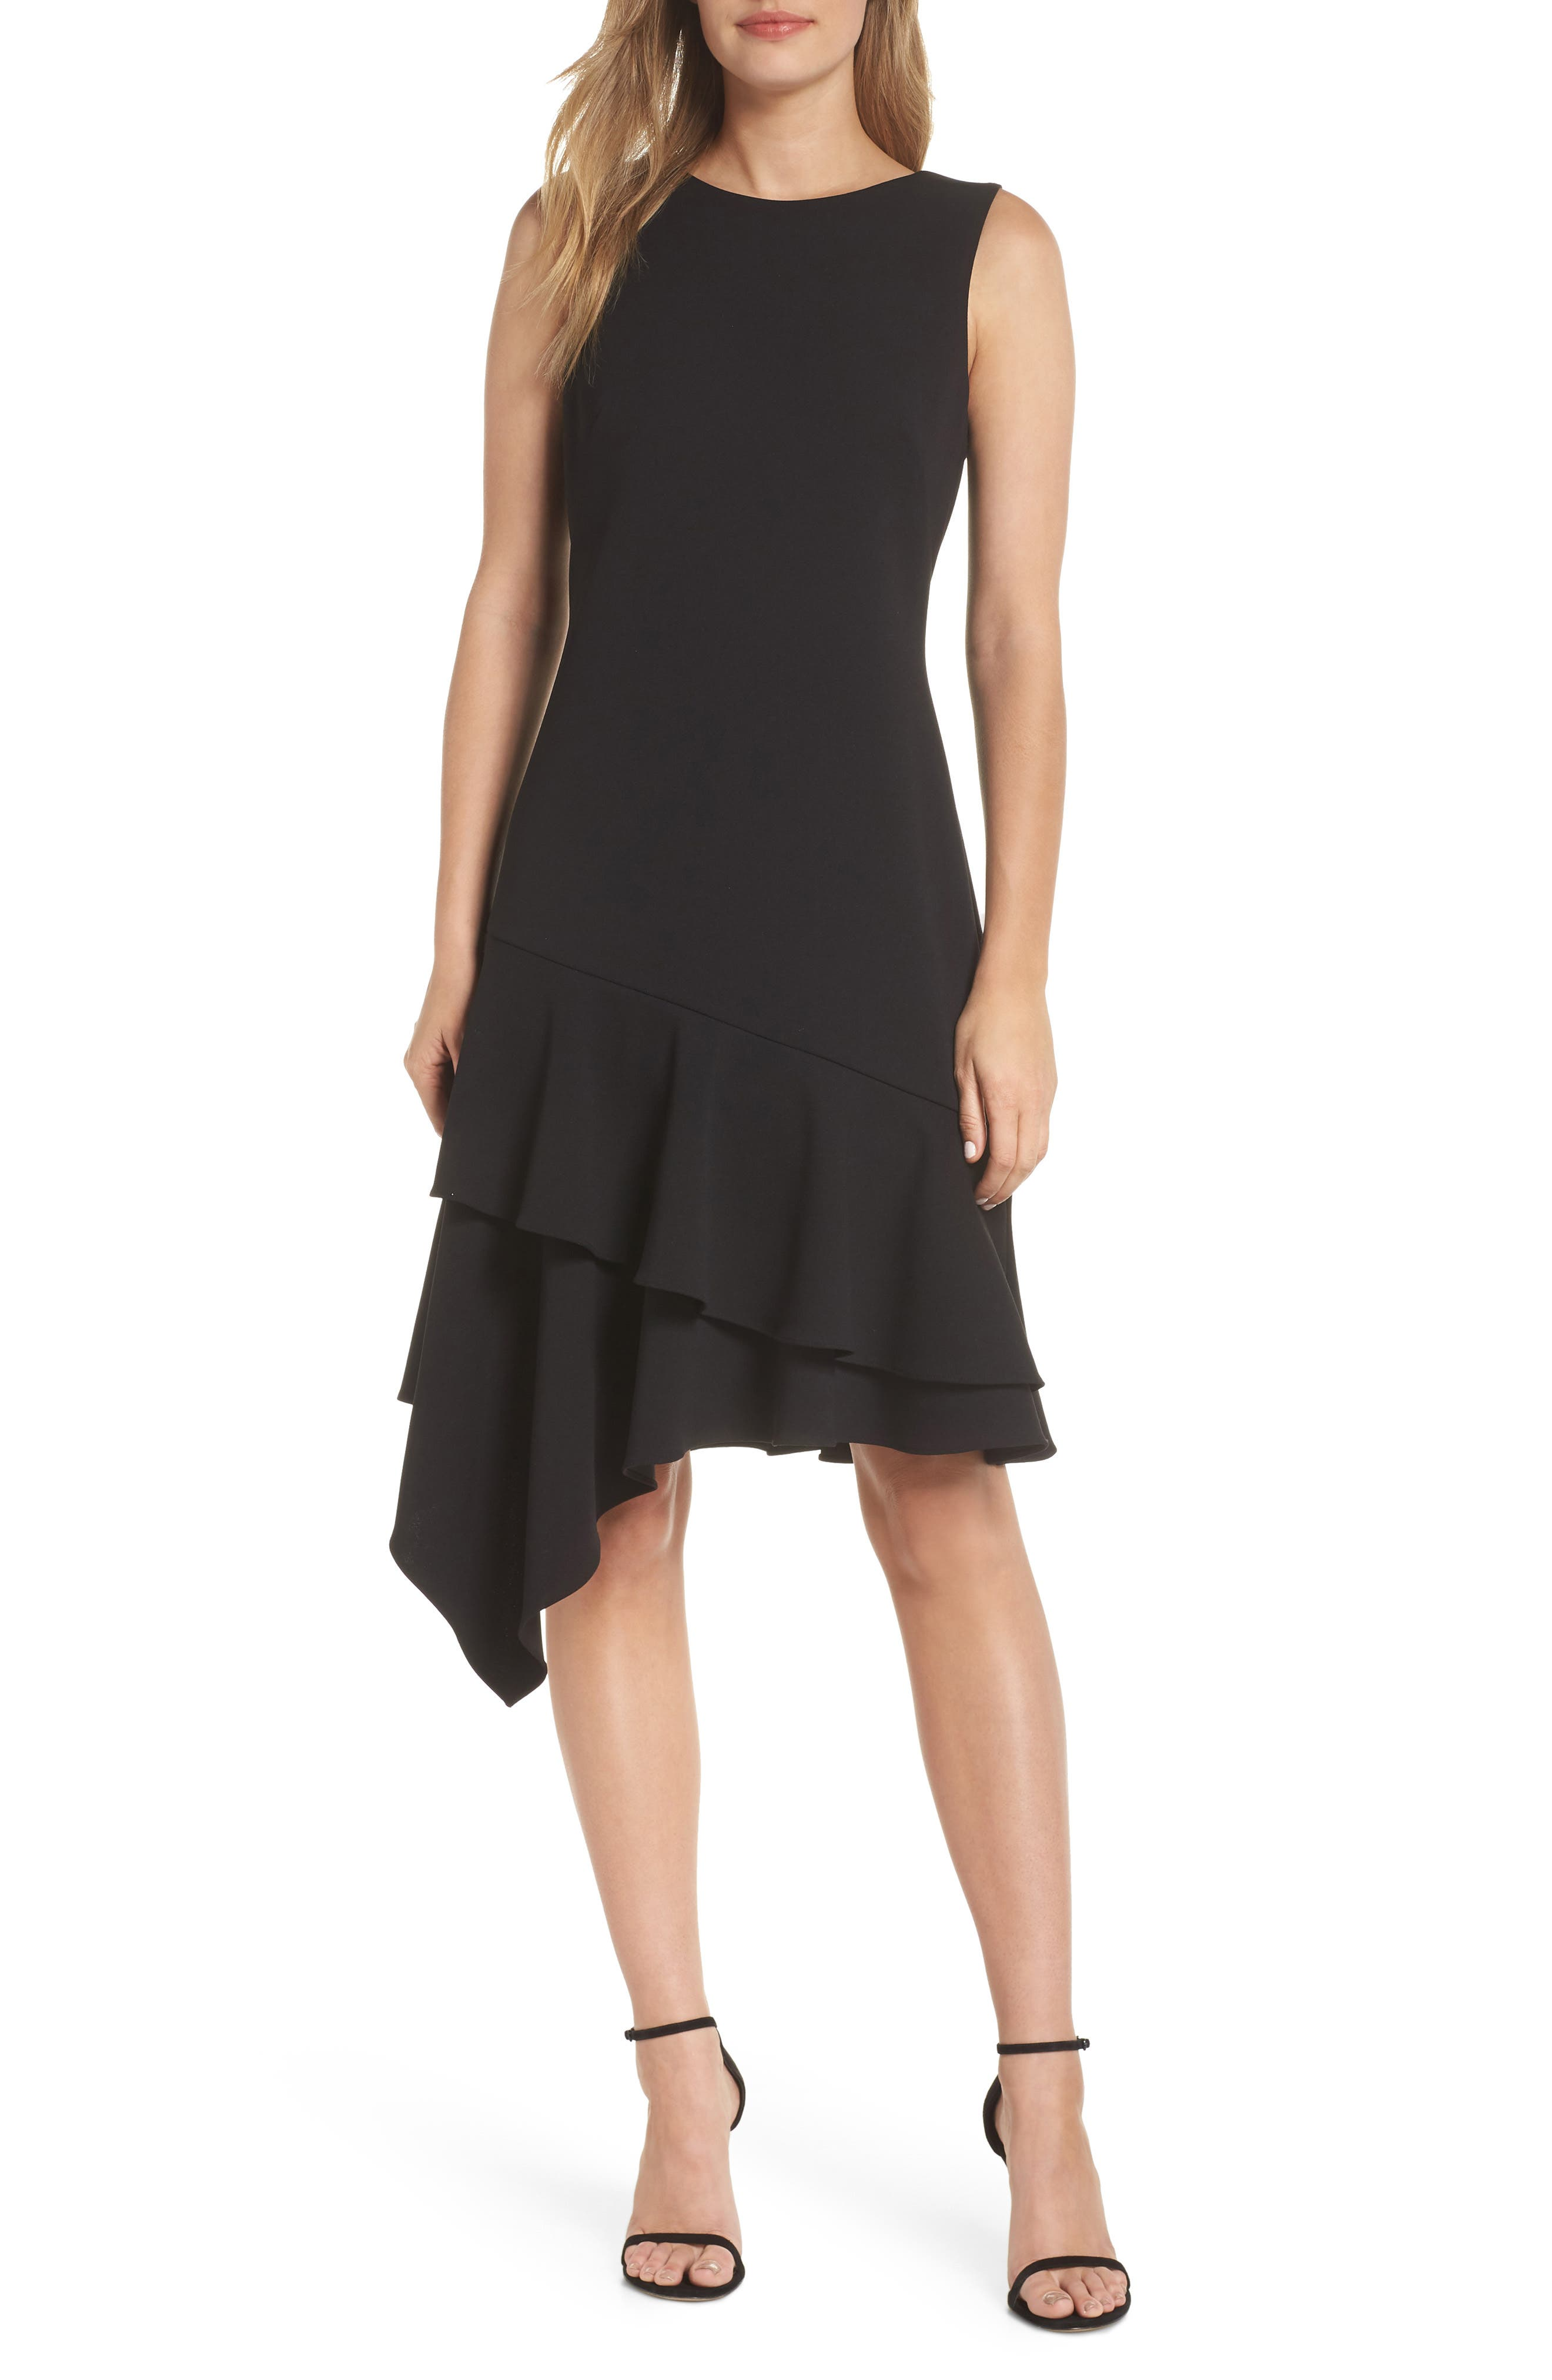 Vince Camuto Asymmetrical Ruffle Hem Cocktail Dress